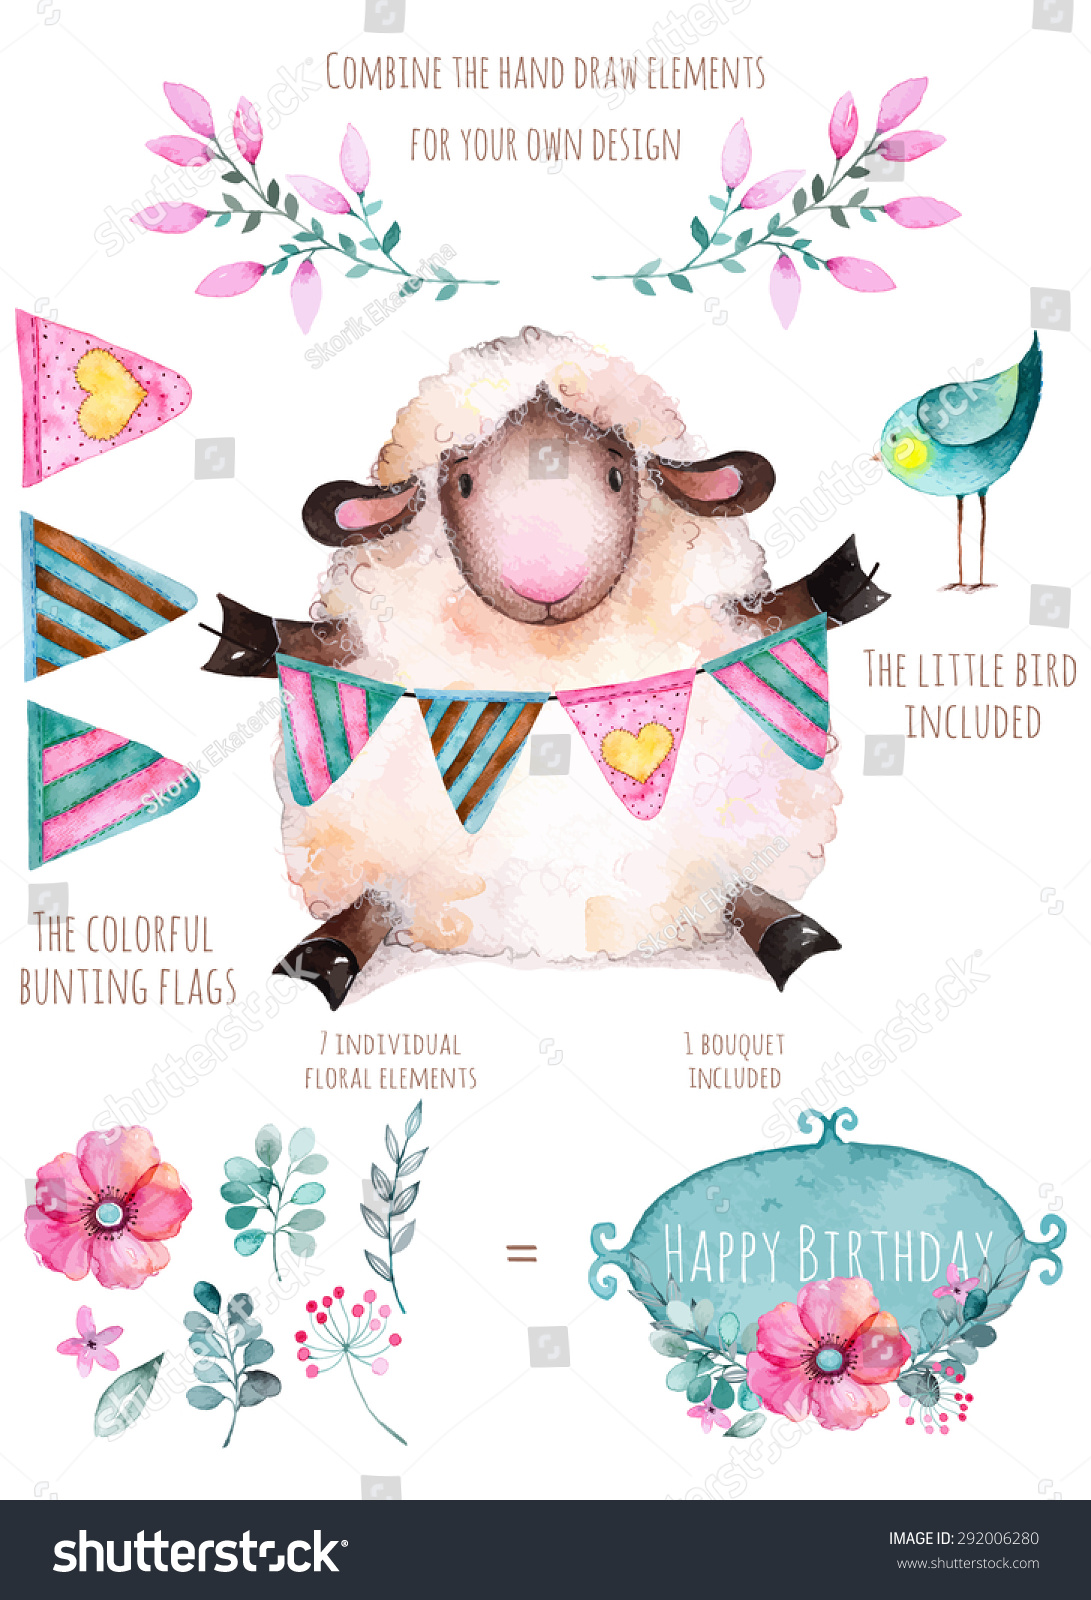 Vector bunting flags lovely celebration card with colorful paper - Pattern With Individual Elements For Your Own Design Flowers Flags Little Bird And